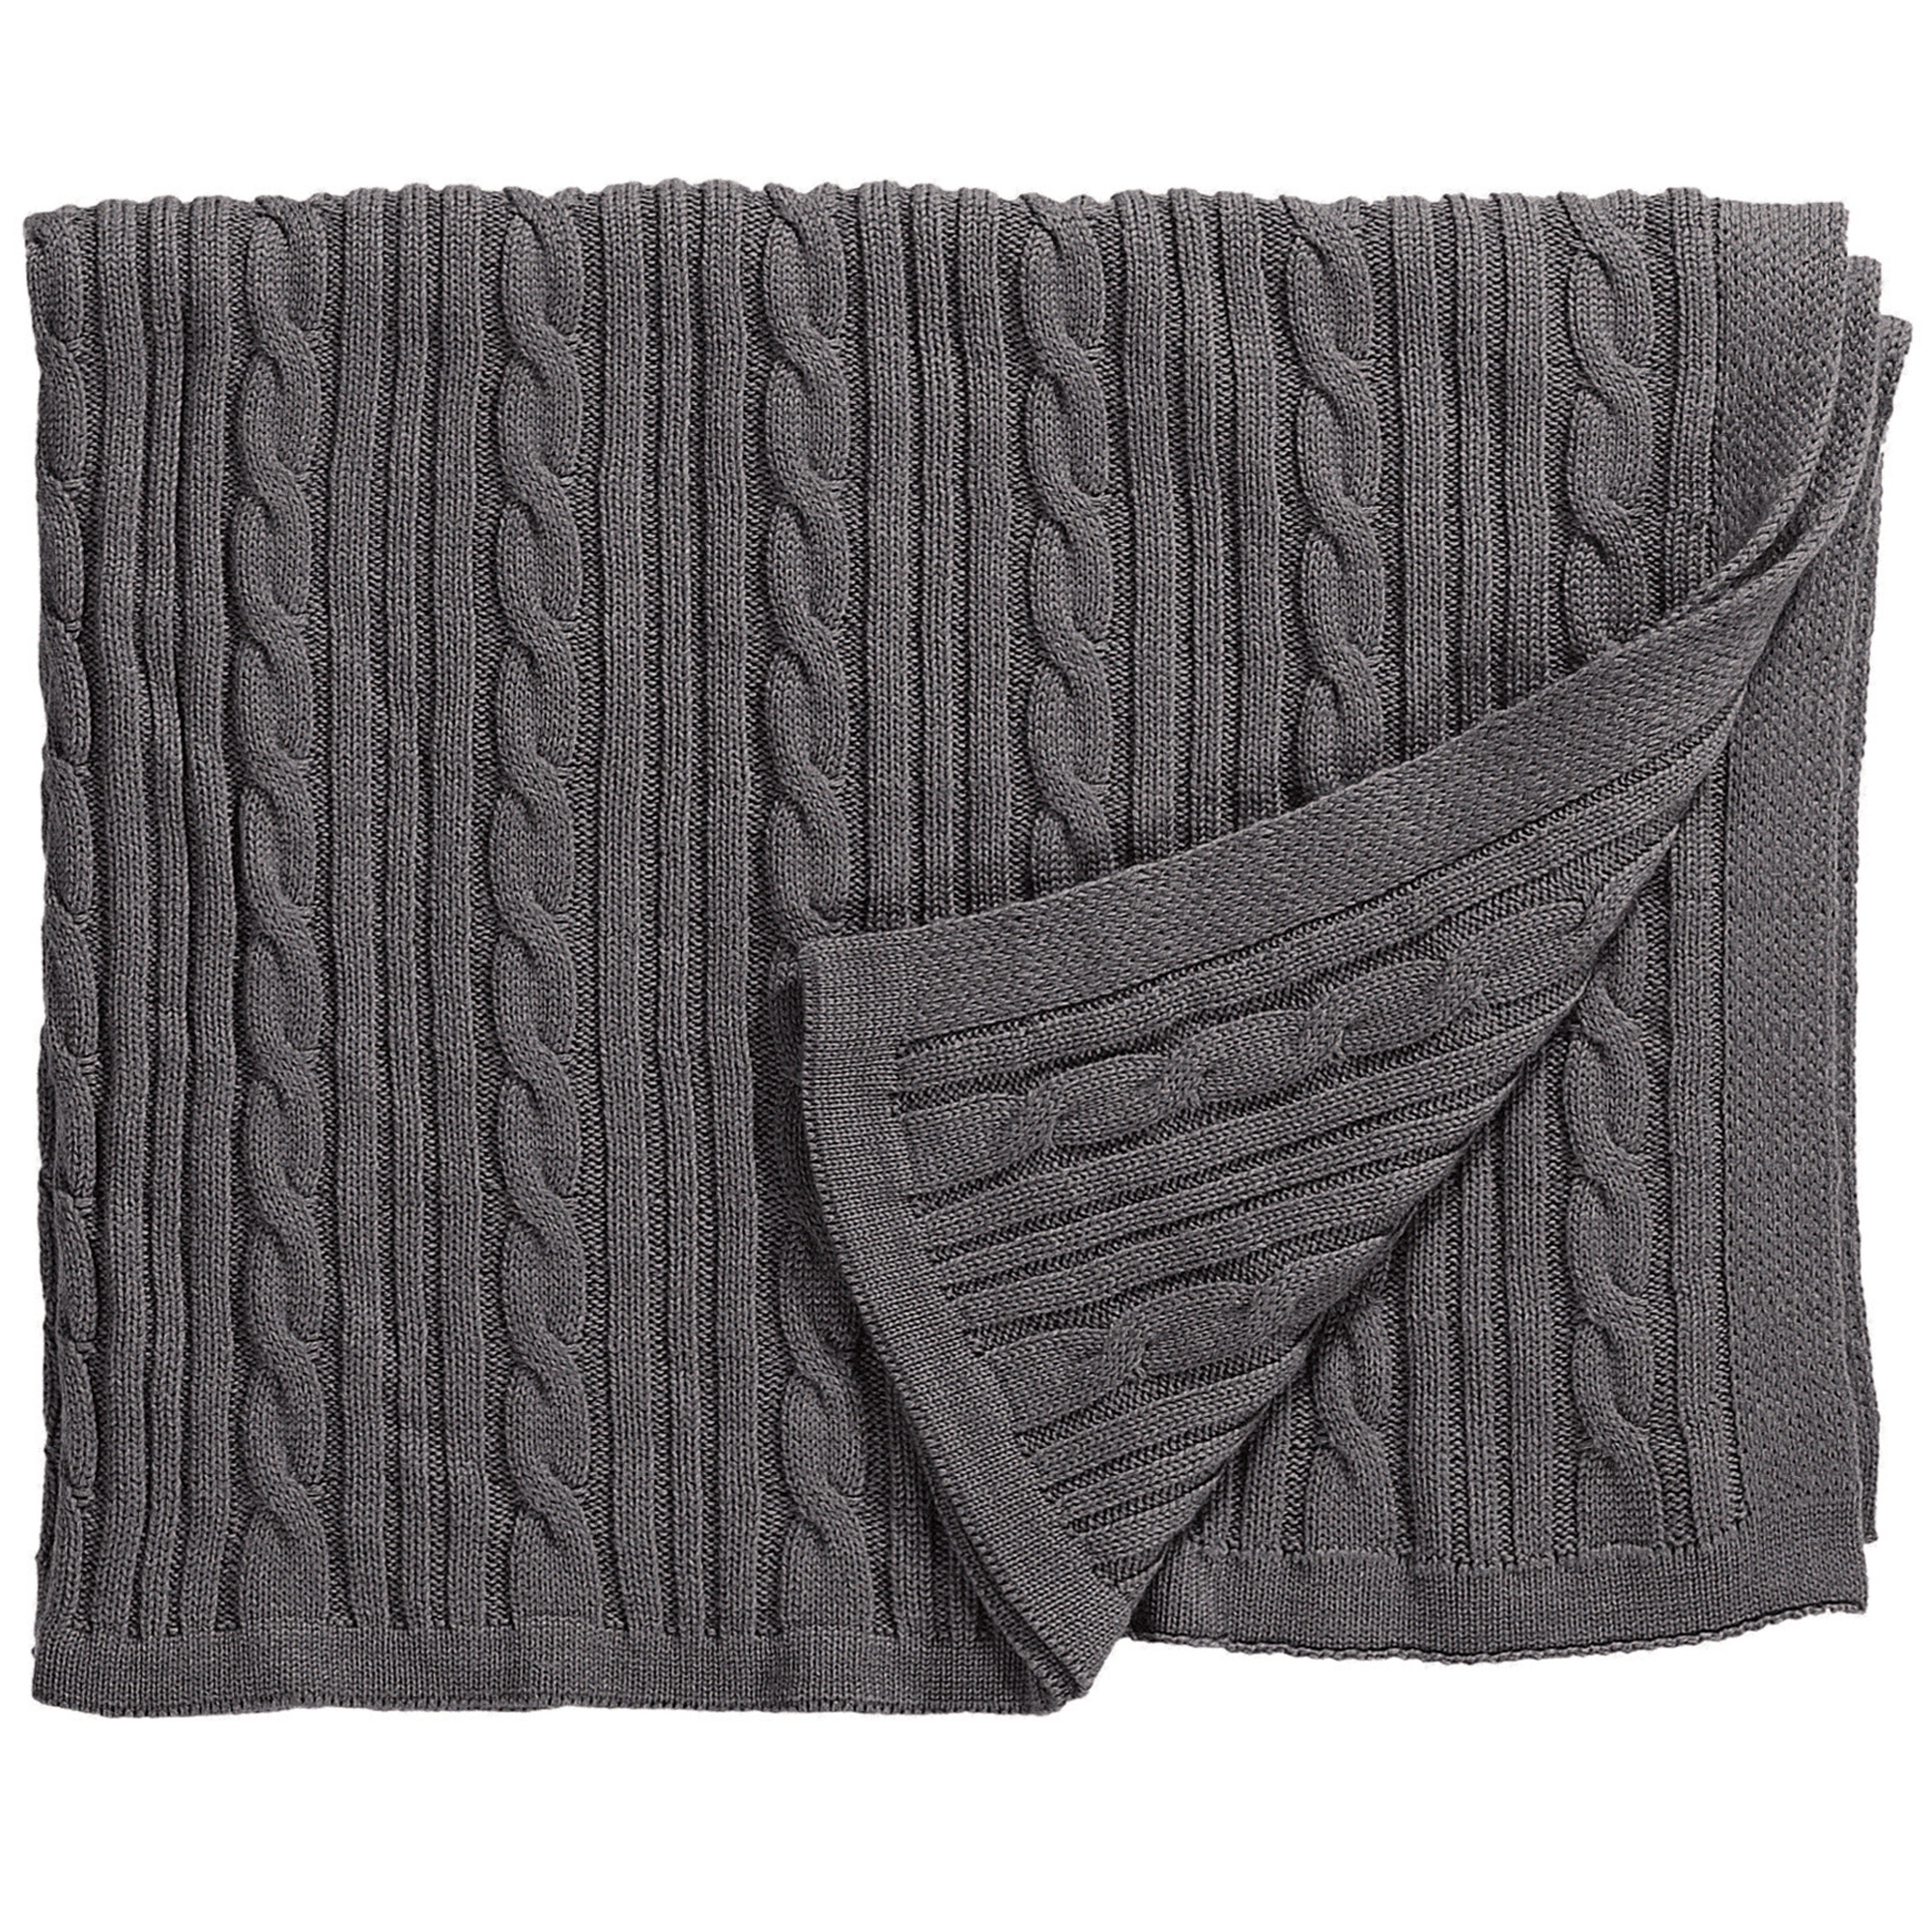 strickdecke zopfmuster grau von eagle products. Black Bedroom Furniture Sets. Home Design Ideas